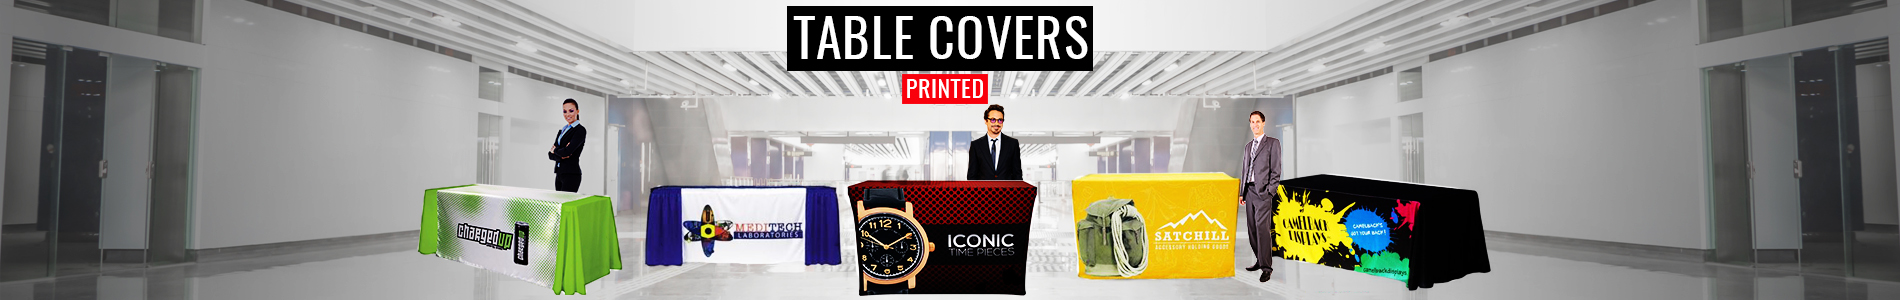 Table Covers Printed